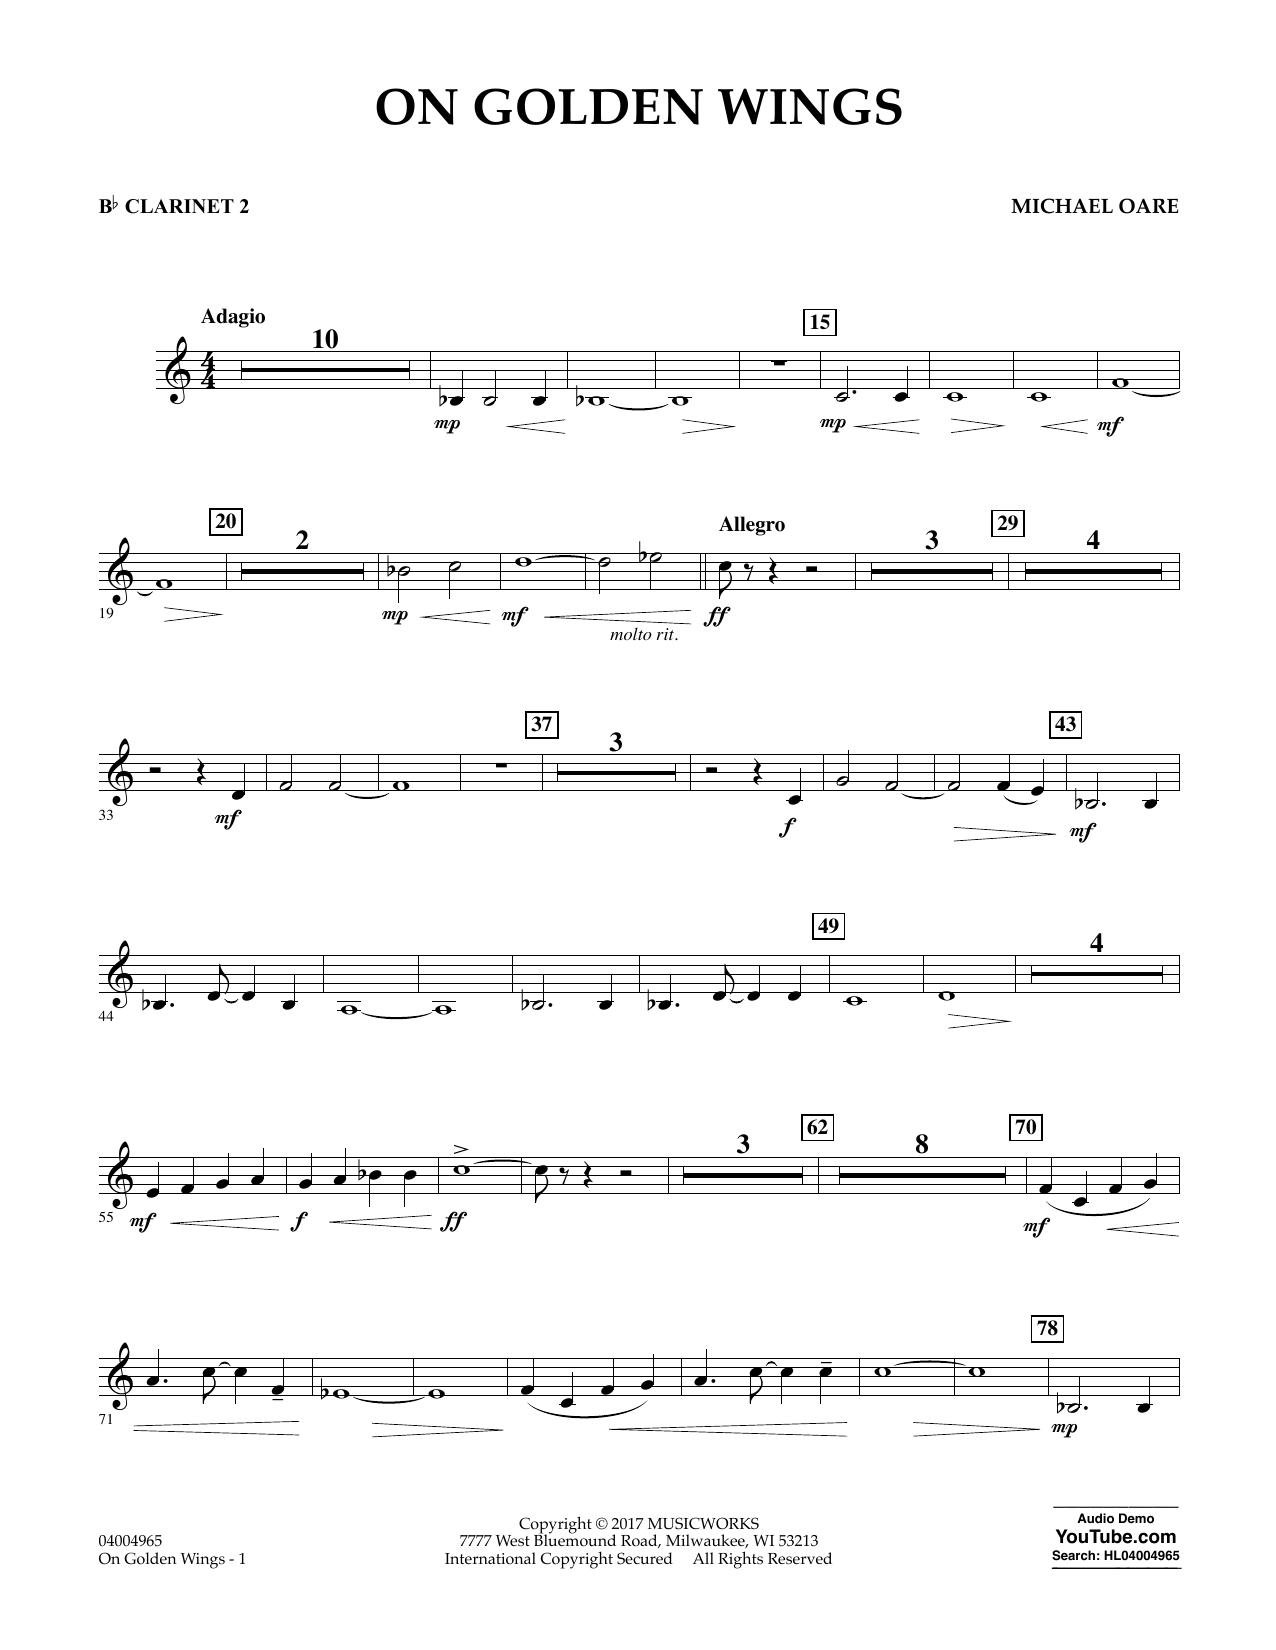 Michael Oare On Golden Wings - Bb Clarinet 2 sheet music notes and chords. Download Printable PDF.